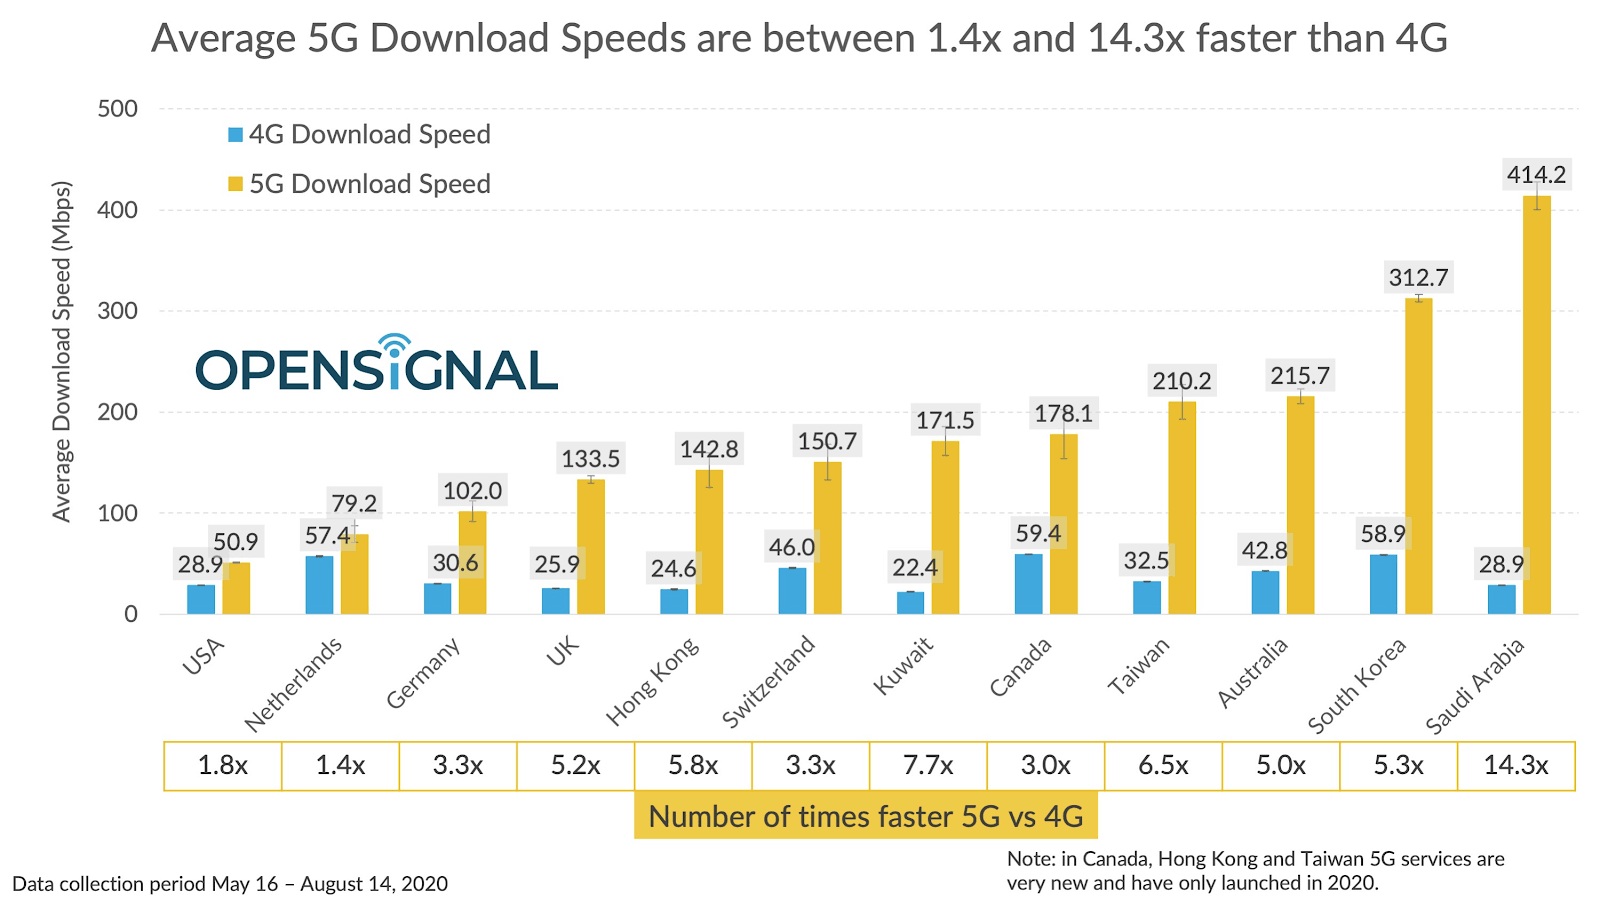 opensignal average 5g download speed US slowest